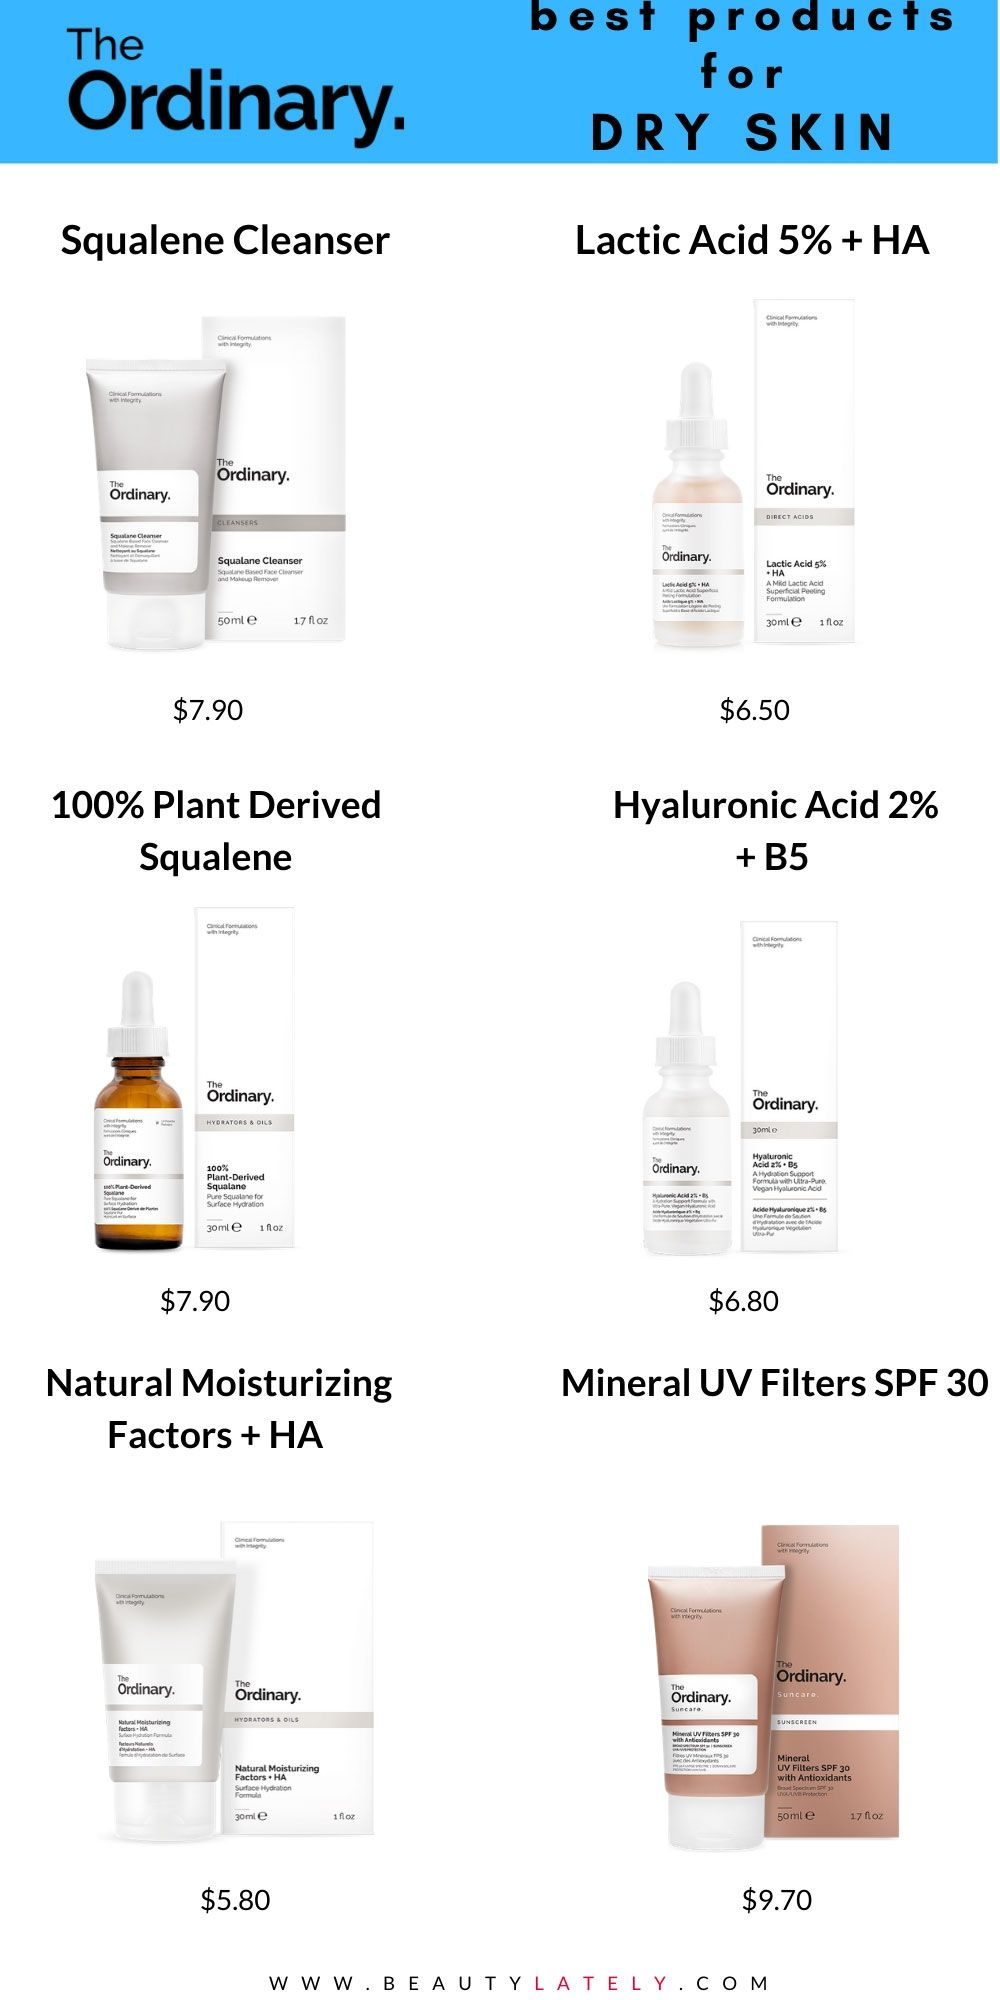 How To Pick The Best The Ordinary Products For Dry Skin In 2020 Dry Skin Routine Moisturizer For Dry Skin The Ordinary For Dry Skin